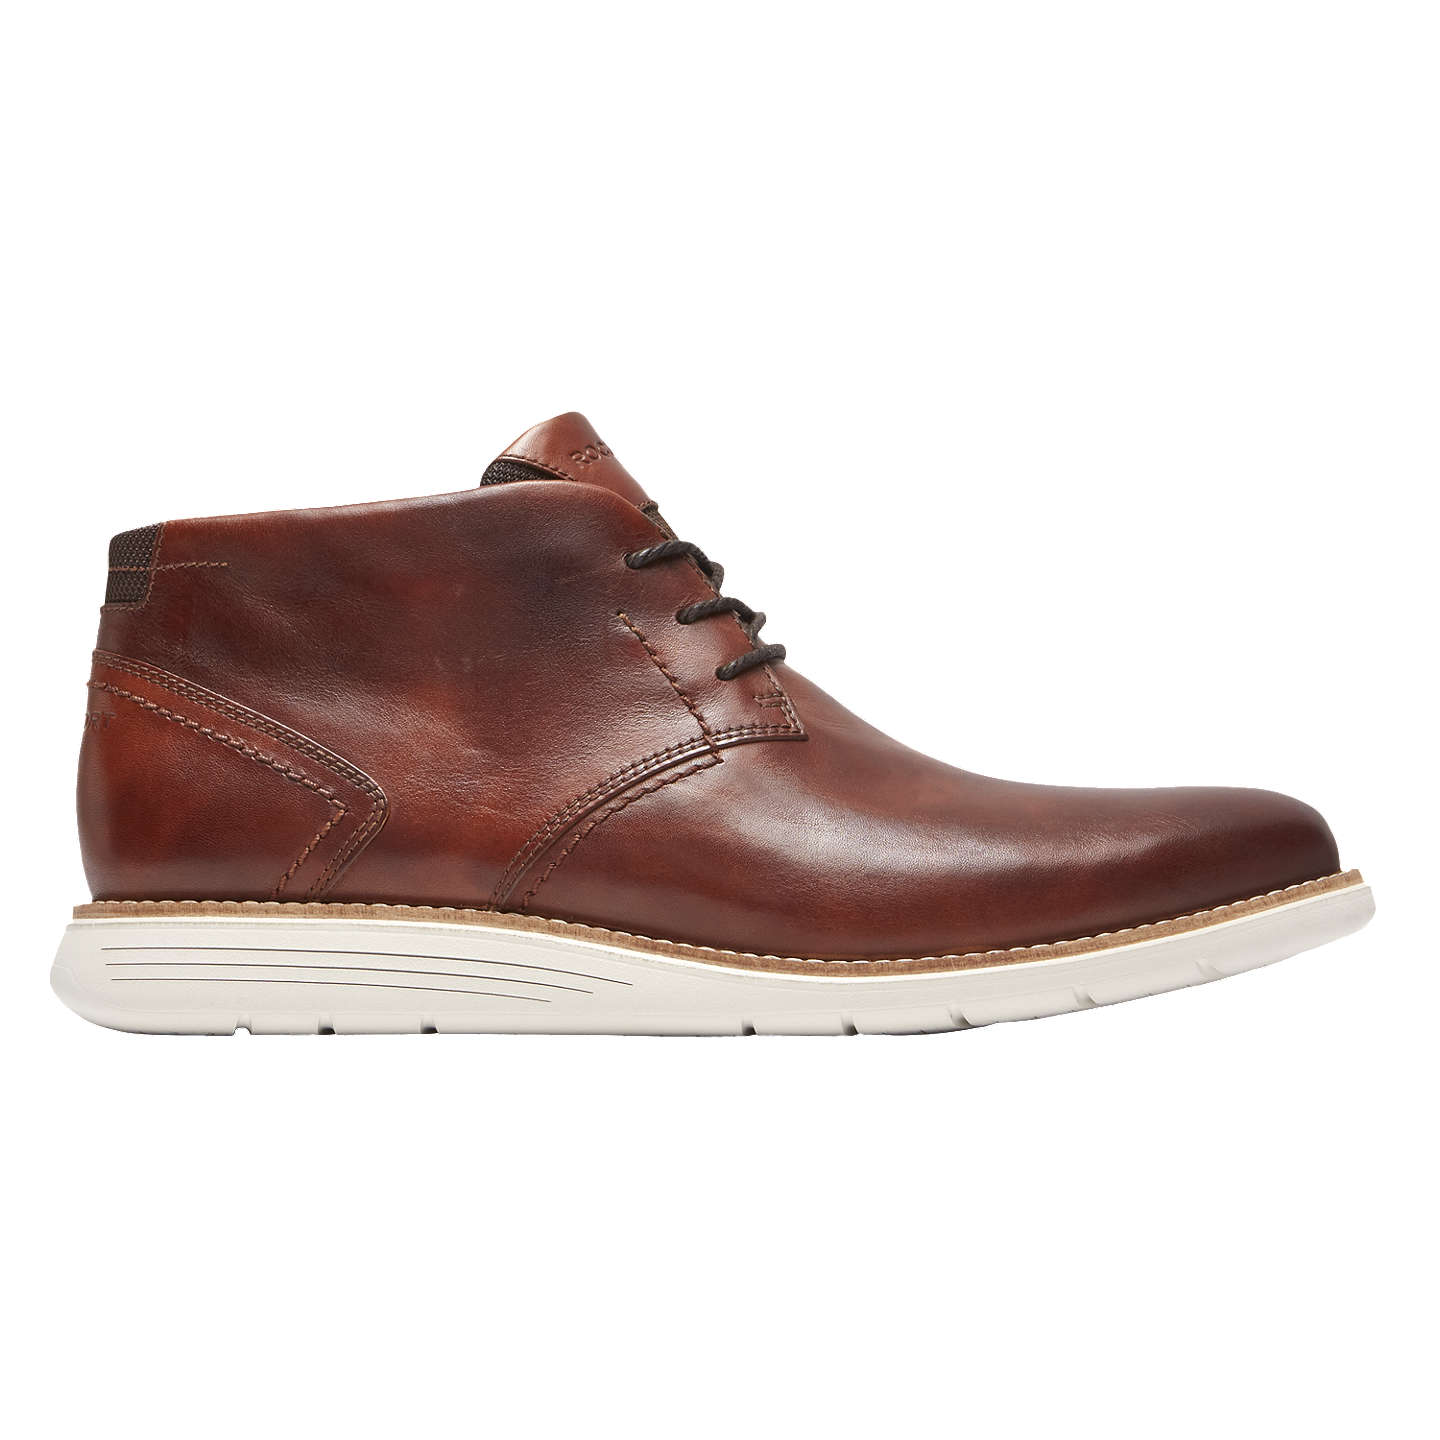 BuyRockport Total Motion Sports Chukka Boot, Tan, 7 Online at johnlewis.com  ...